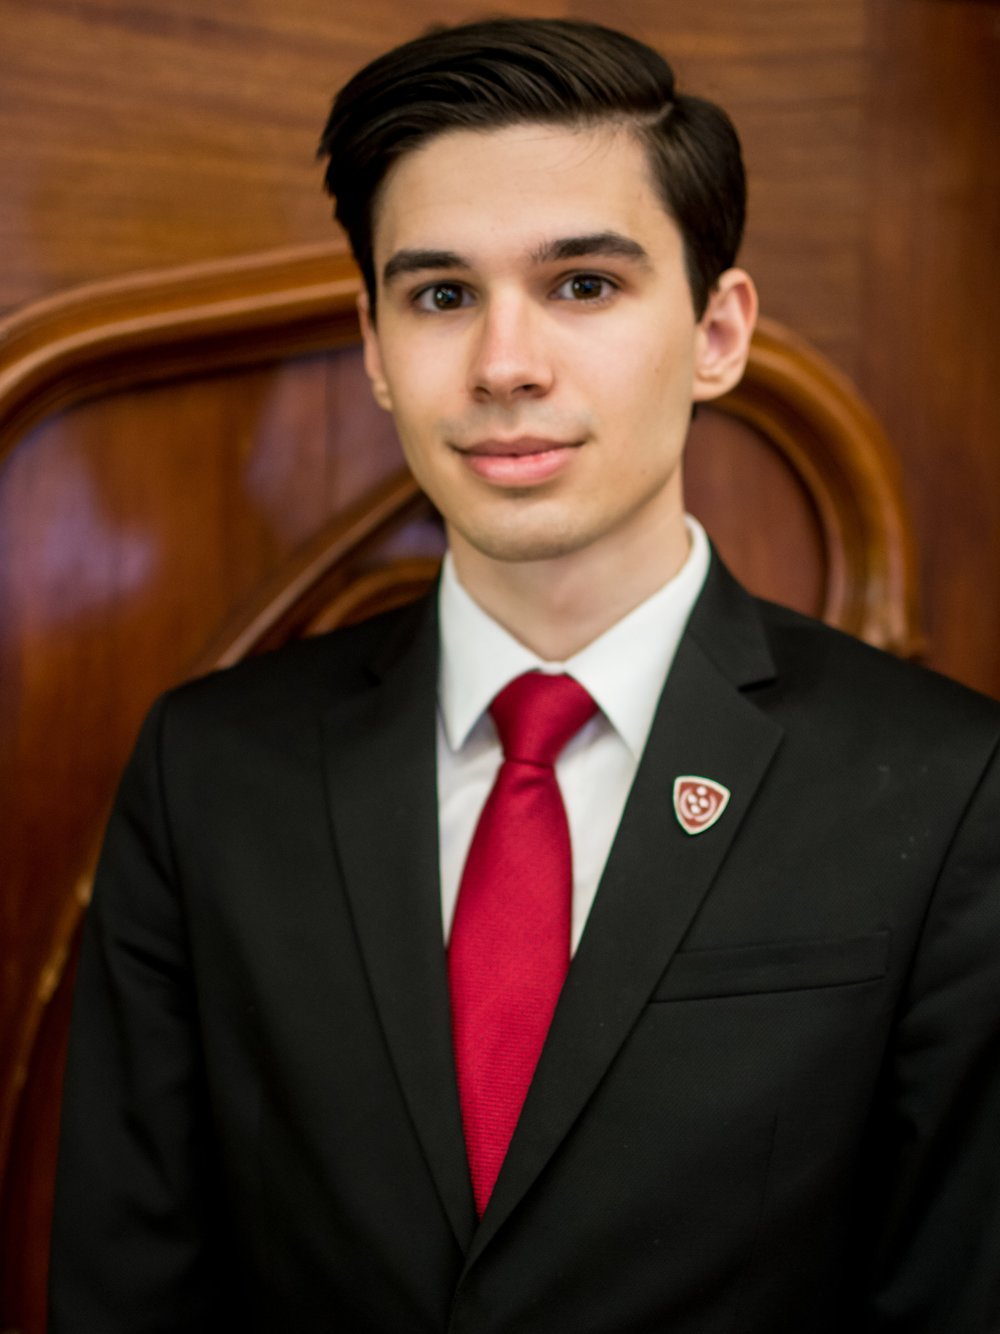 Samuil Stoychev - Chief of Staff - Meet Sam, your Chief of Staff for McMUN 2019! Sam was born in Bulgaria but was raised in Montreal, and he is now entering his third year at McGill Law. Sam is incredibly active in the student body, being involved with the McGill Business Law Association, Journal of Sustainable Development Law, and the Judicial Board of the Students' Society of McGill University. He has also been passionate about Model UN for close to seven years, and he attended McMUN as a delegate before holding the positions of Food Coordinator and Director of Public Relations at the conference. When he's not busy with McMUN, watching politics-themed TV shows, or learning classical languages, Sam loves being outdoors - you can frequently find him playing tennis and swimming!